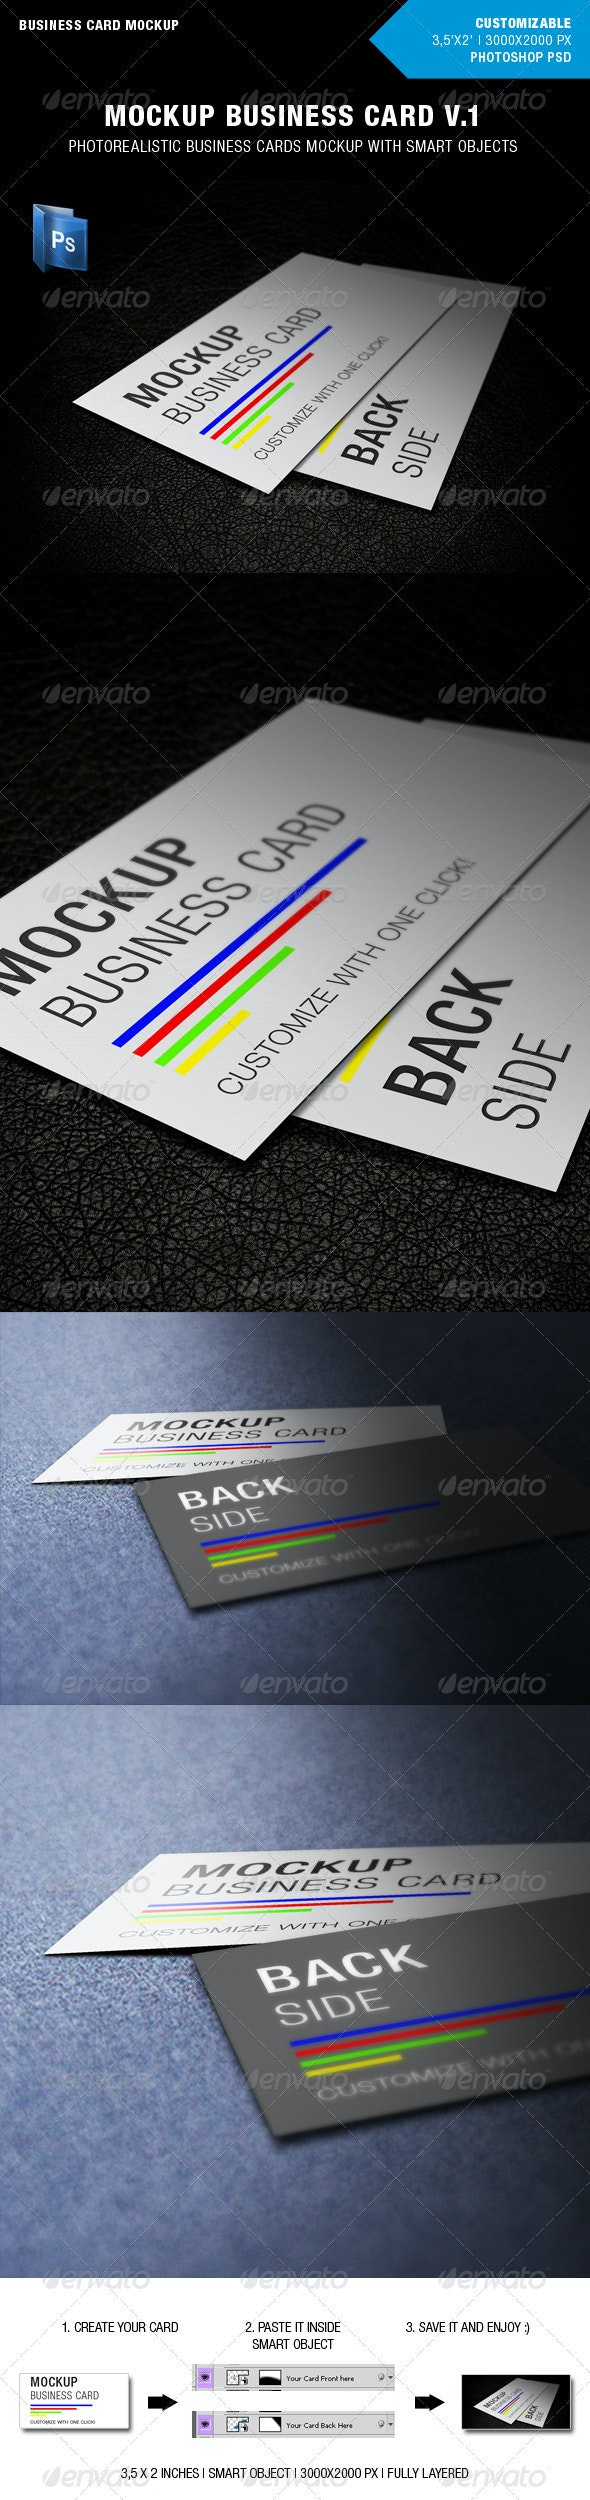 Mockup Business Card v1 - Business Cards Print